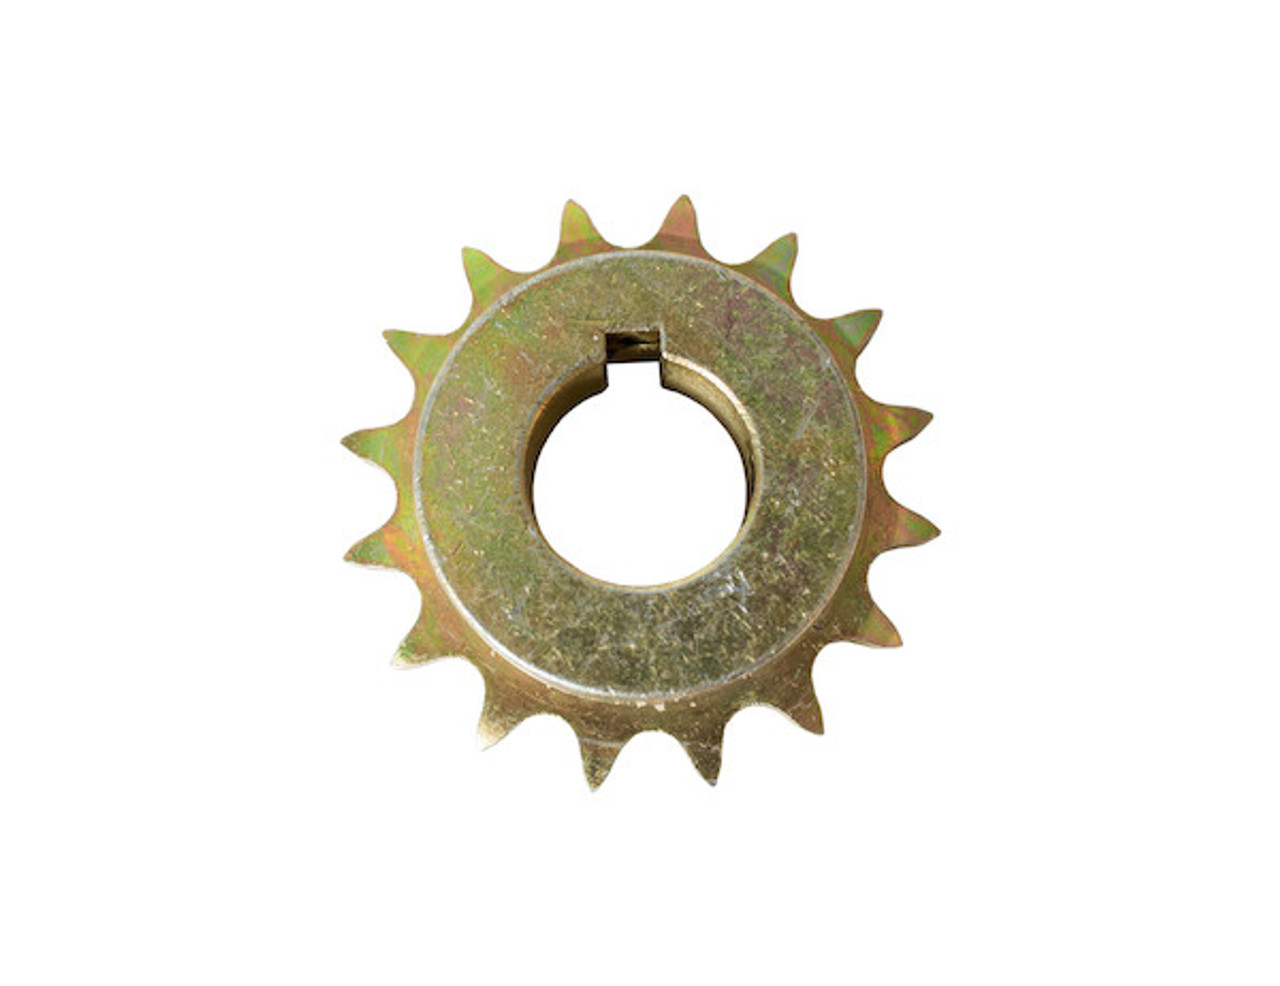 BUYERS 1410702 Replacement 1 Inch 16-Tooth Yellow Zinc Gearbox Sprocket With Set Screws For #40 Chain For SaltDogg Salt Spreader